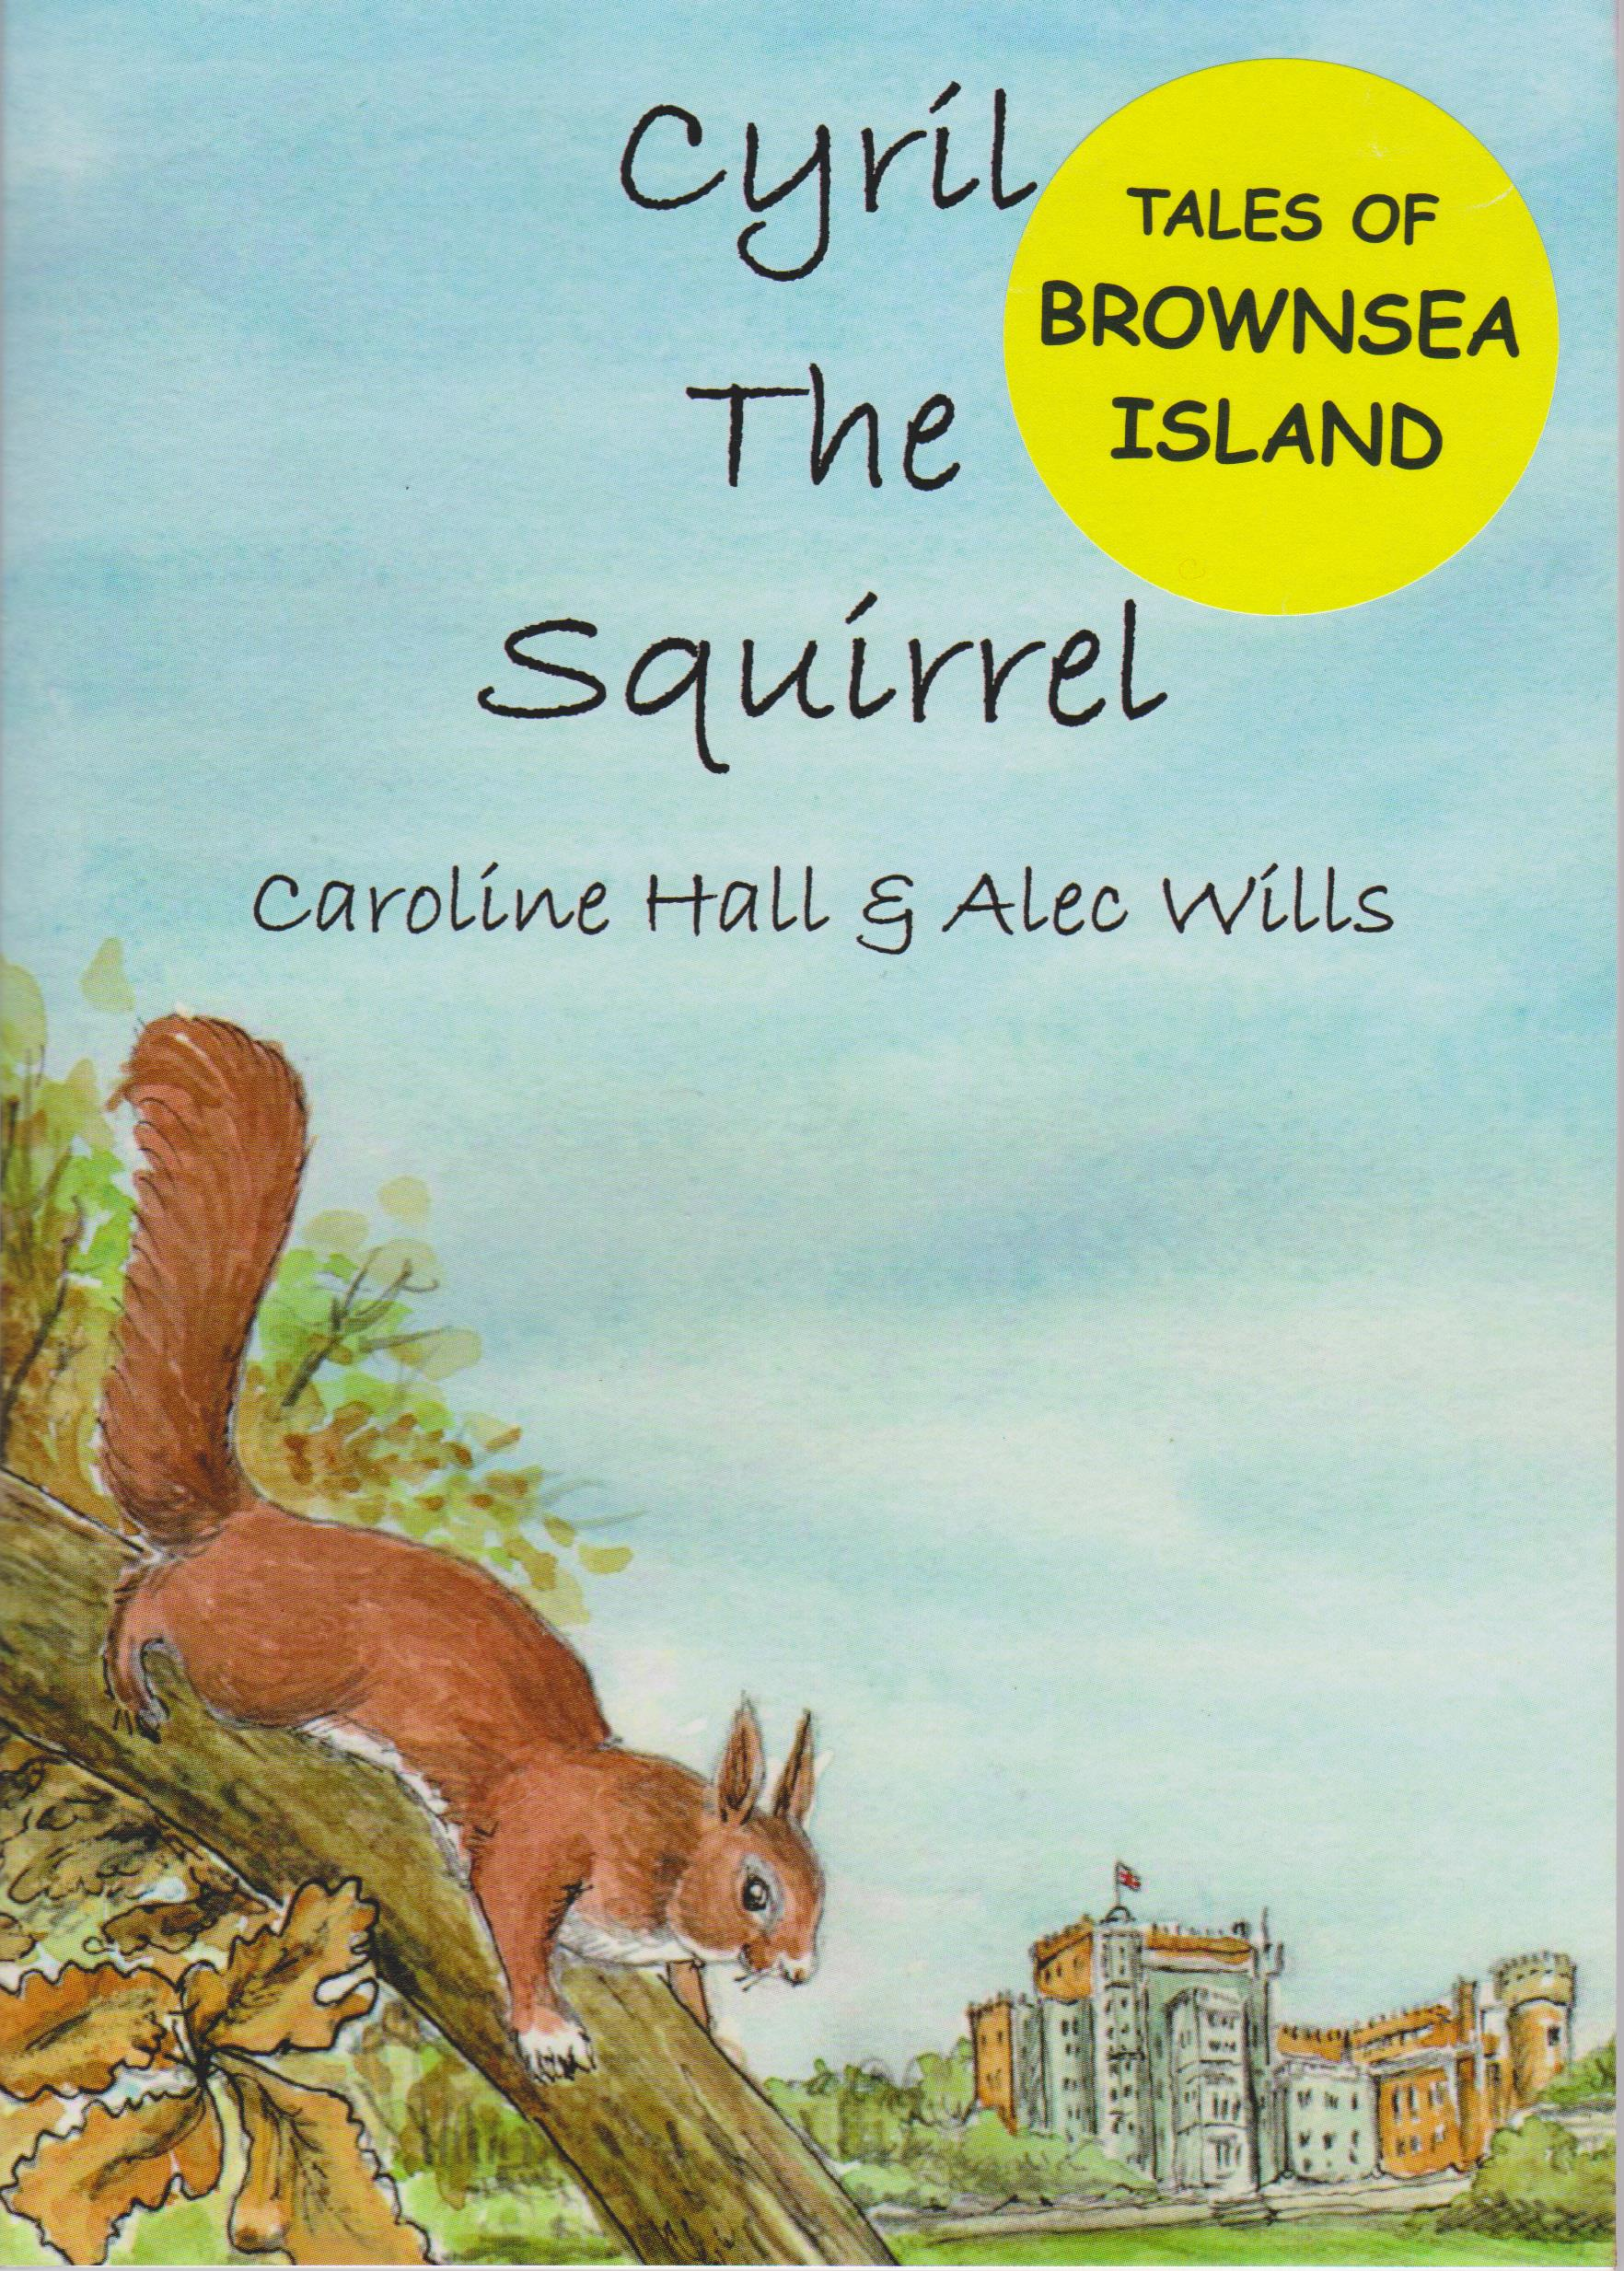 cyril the squirrel (cover)